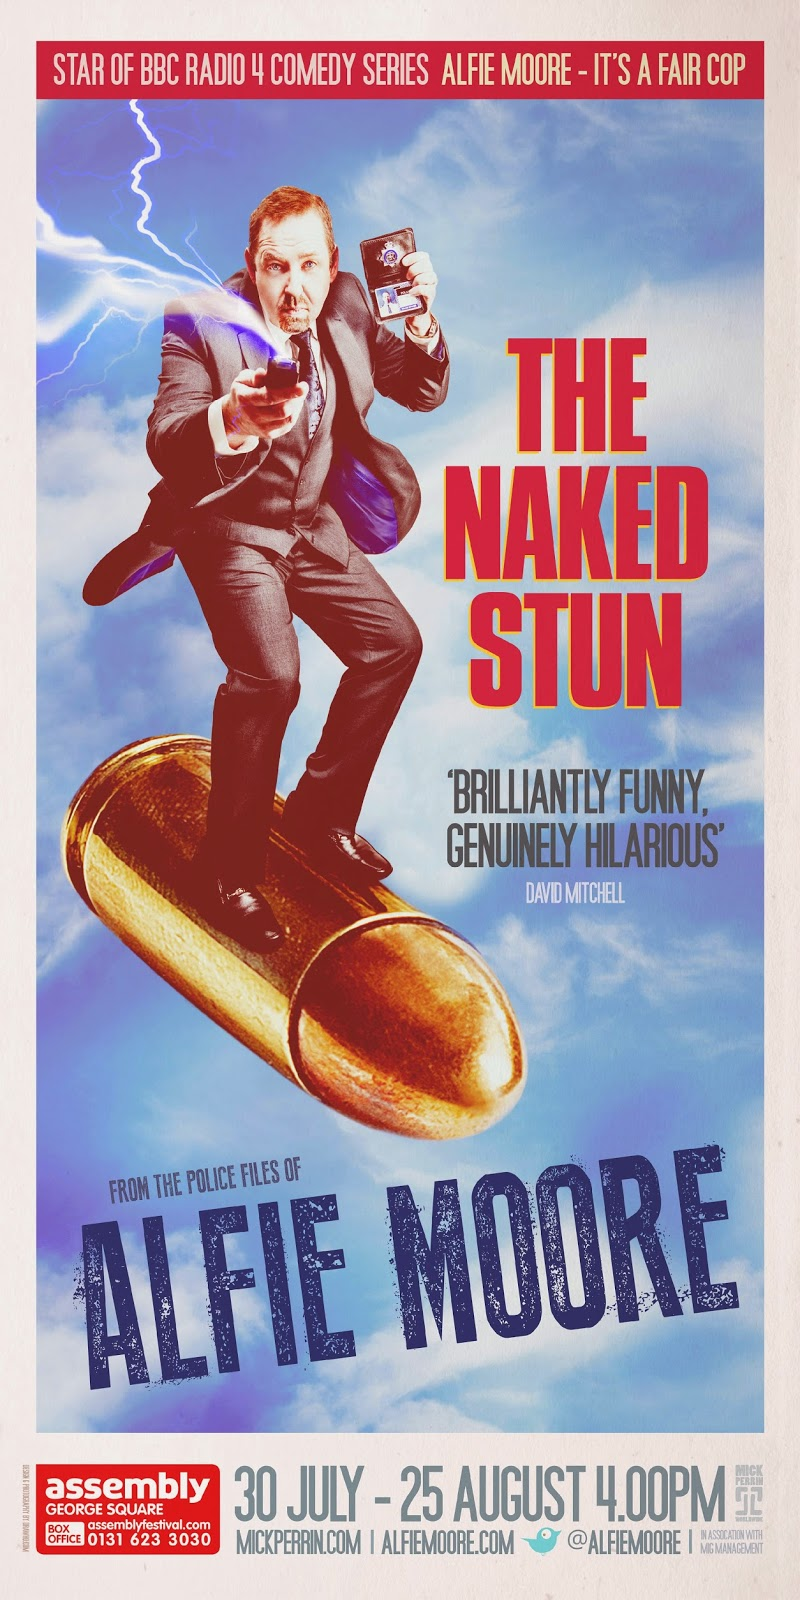 Alfie Moore - The Naked Stun - Edinburgh Fringe - Assembly George Square Studios - MIG Management - bbc Radio 4 - It's a Fair Cop -Police Comedian